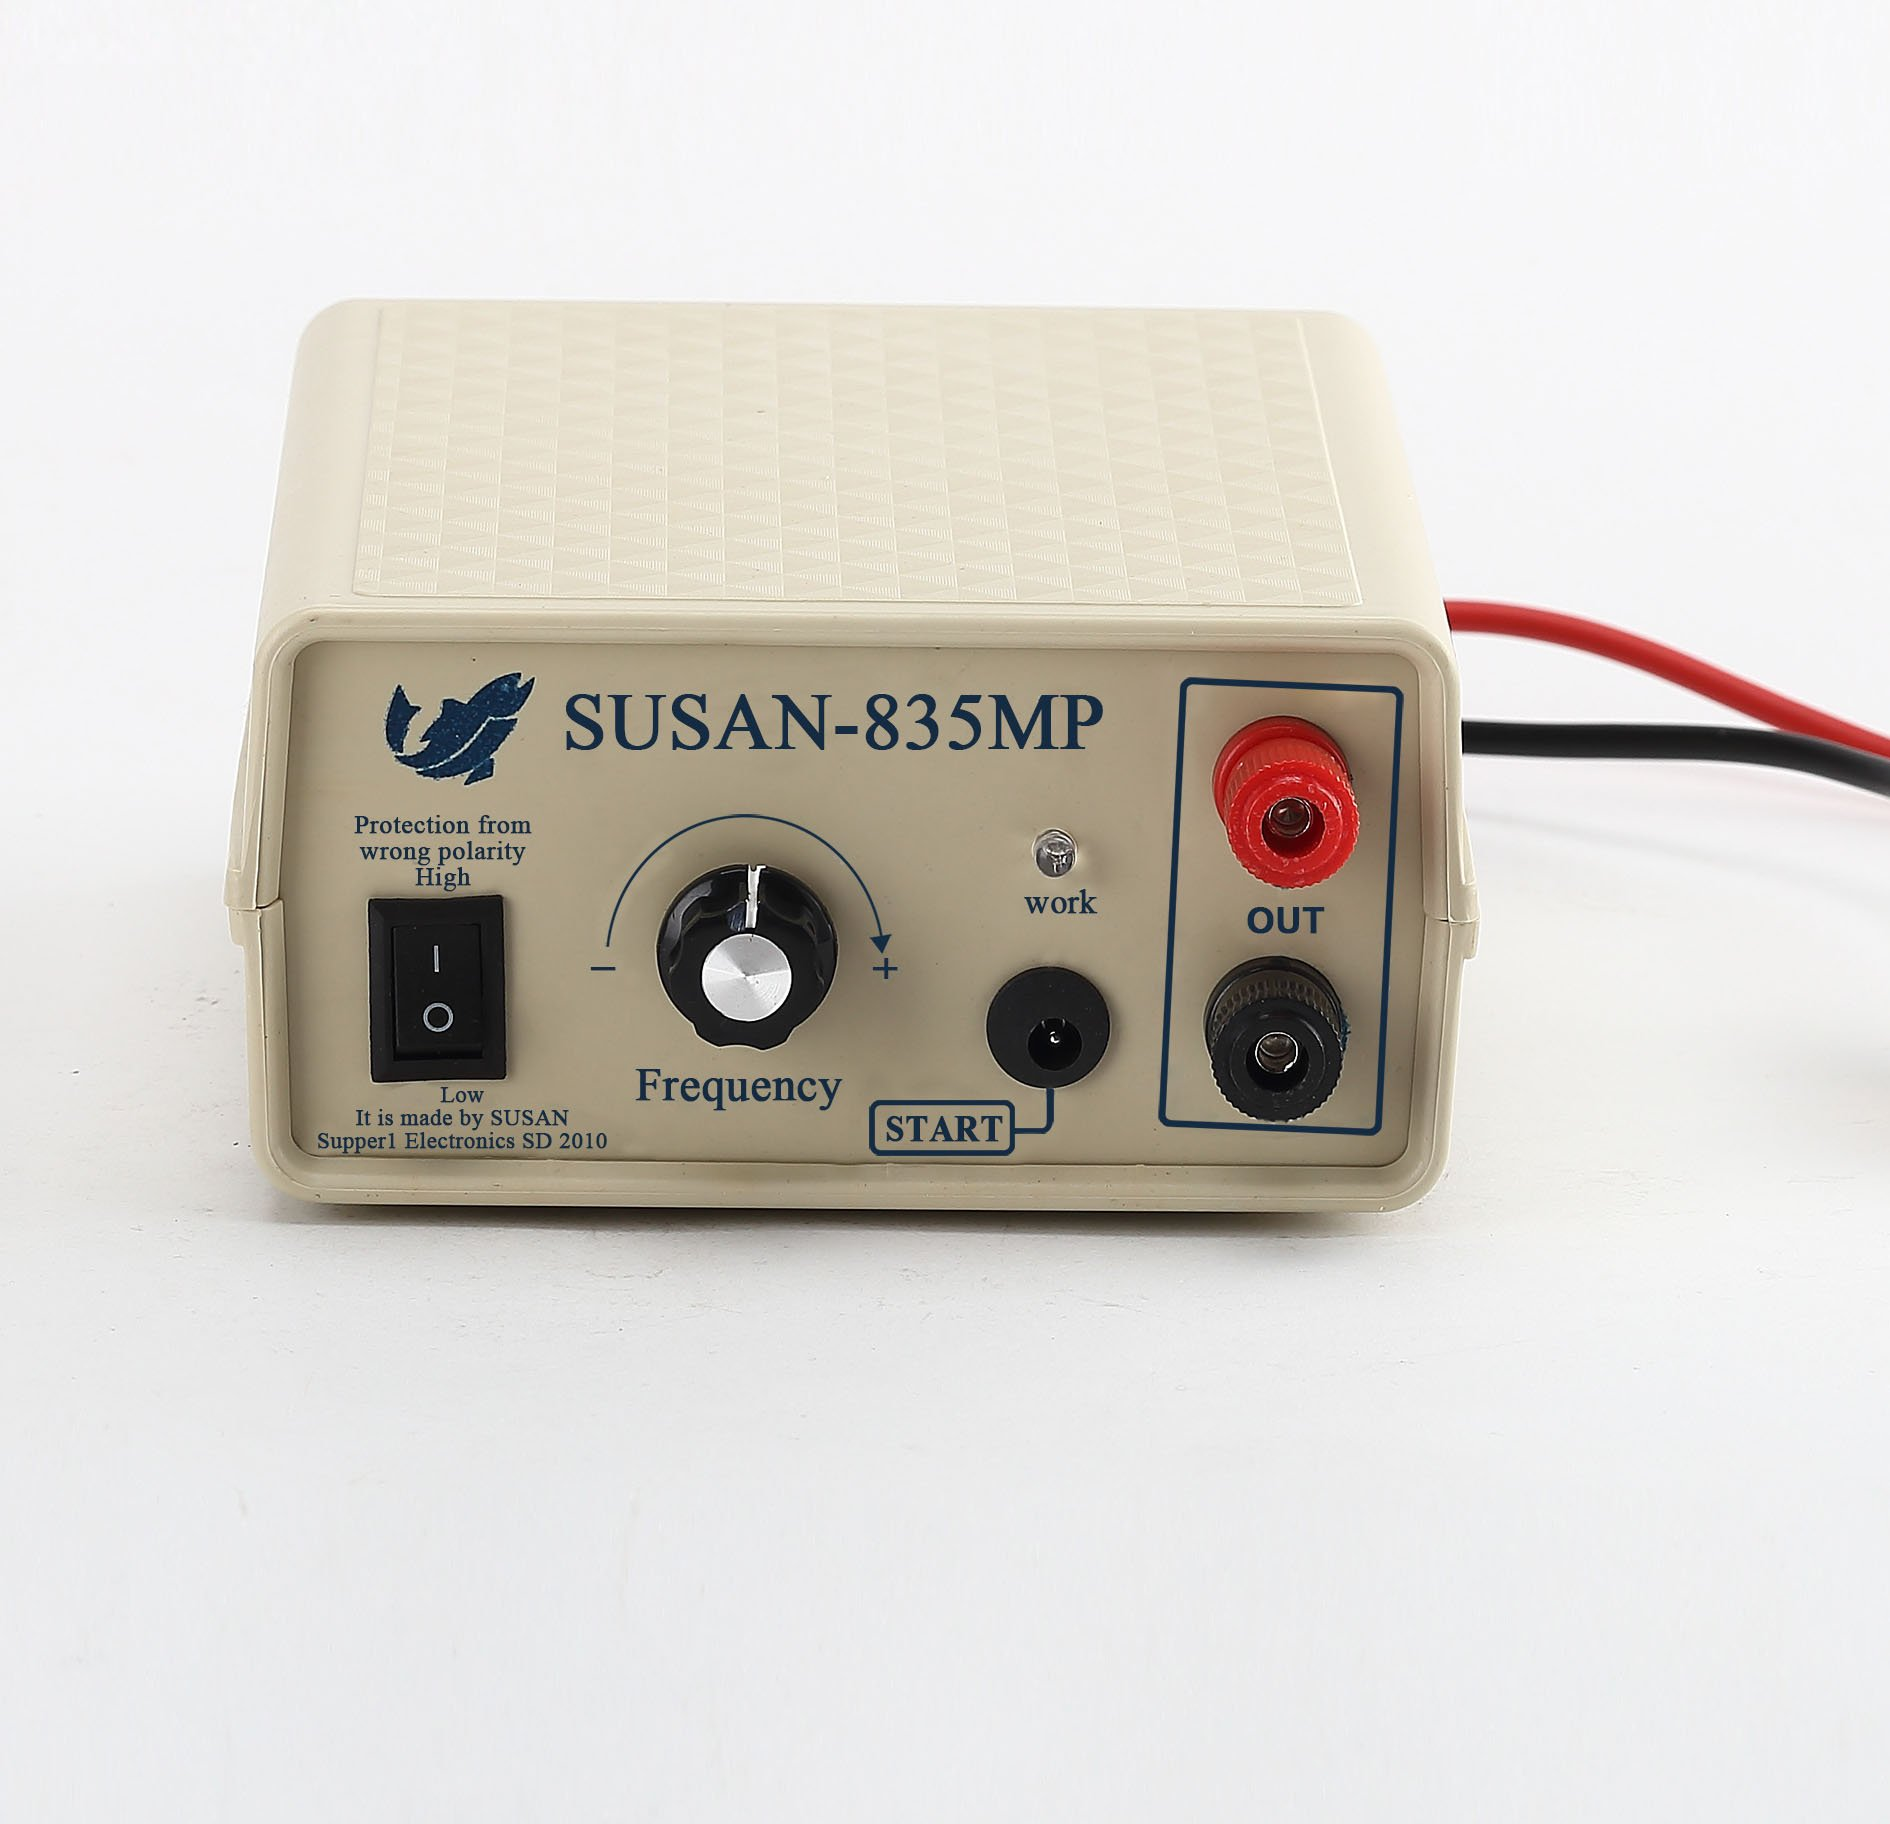 SUSAN 835MP Ultrasonic Inverter,Electro Fisher, Fishing Machine, Fish Equipment,Fish Shocker, Fish Stunner